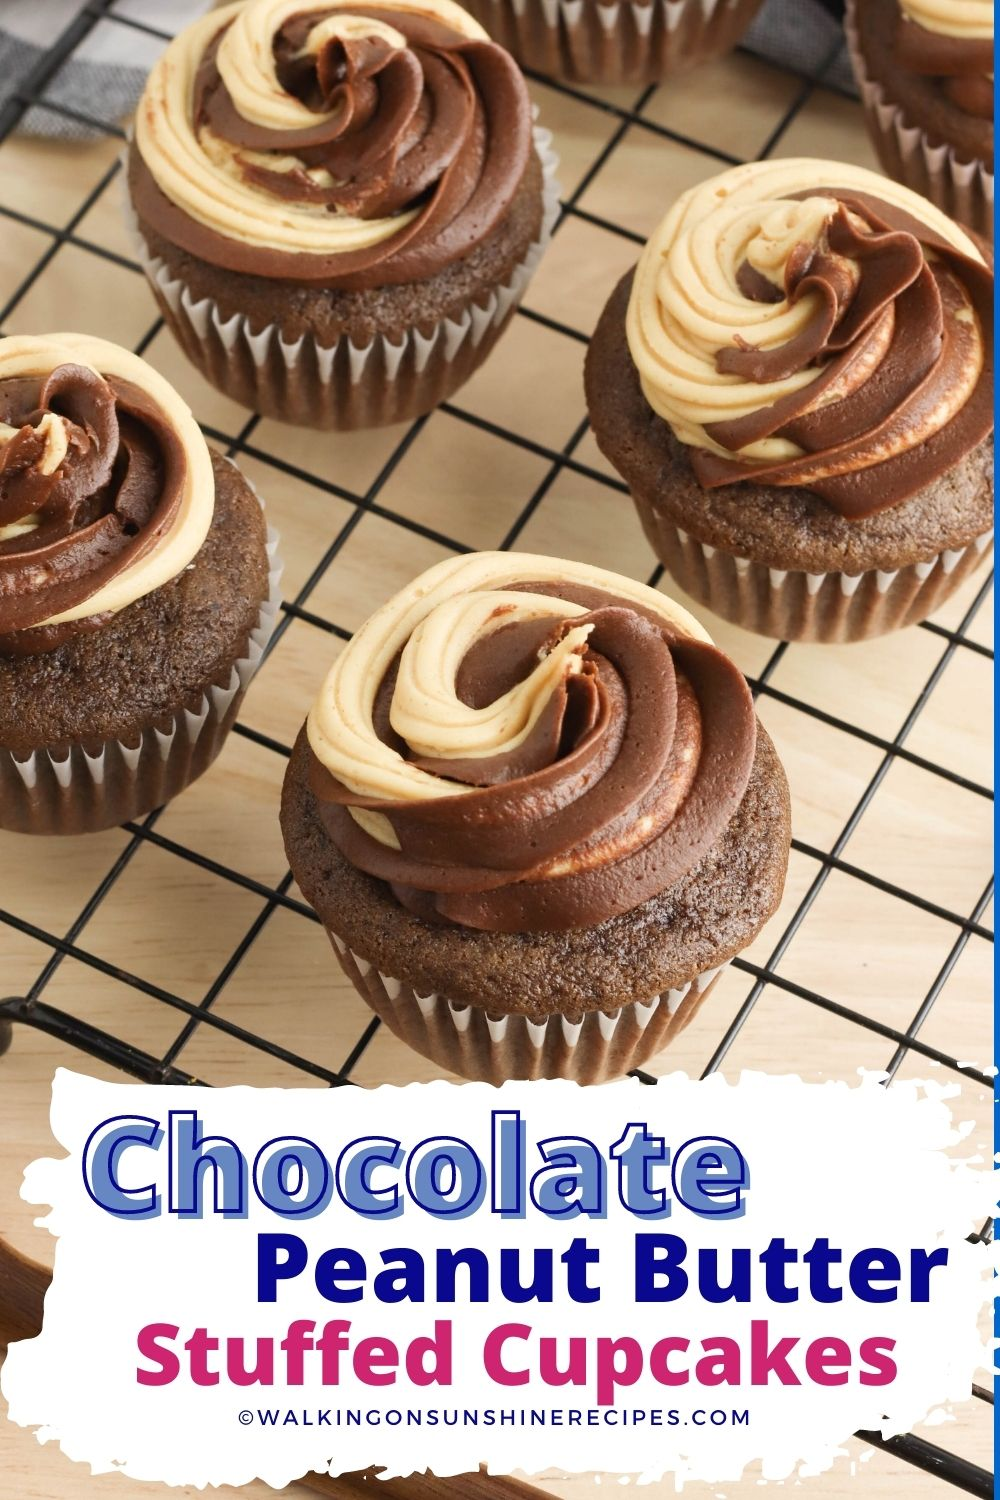 chocolate peanut butter cupcakes with peanut butter filling.